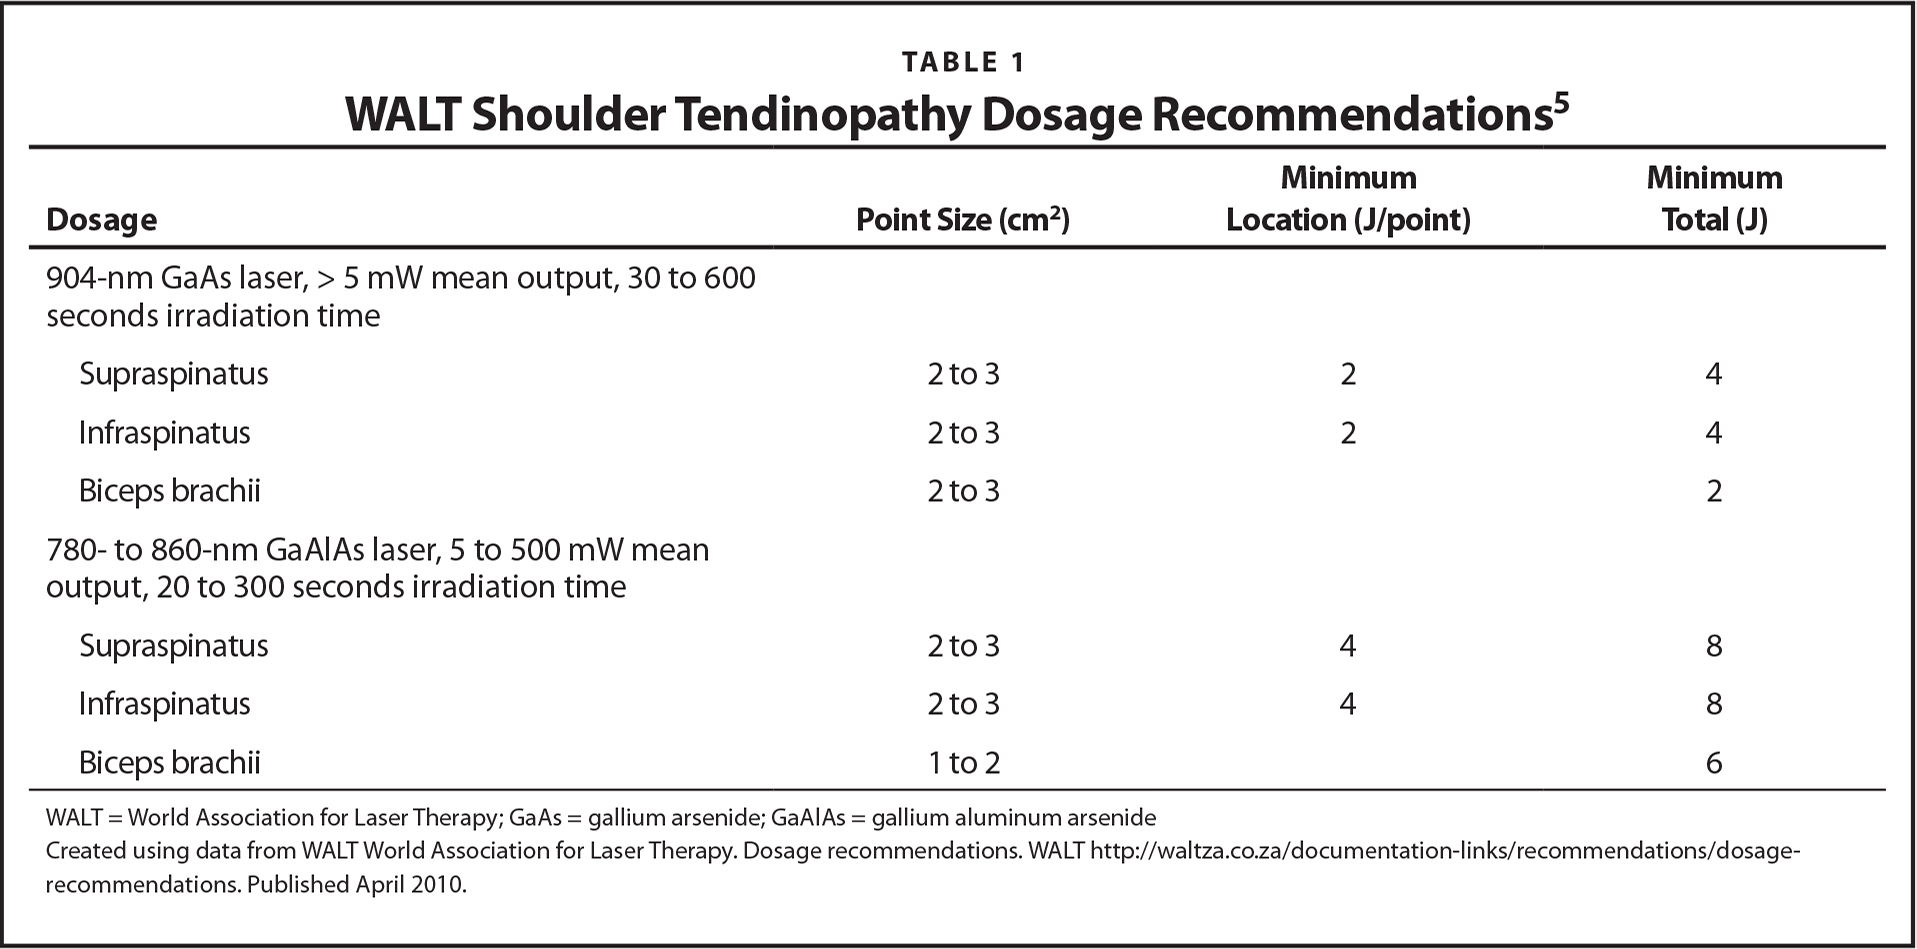 WALT Shoulder Tendinopathy Dosage Recommendations5